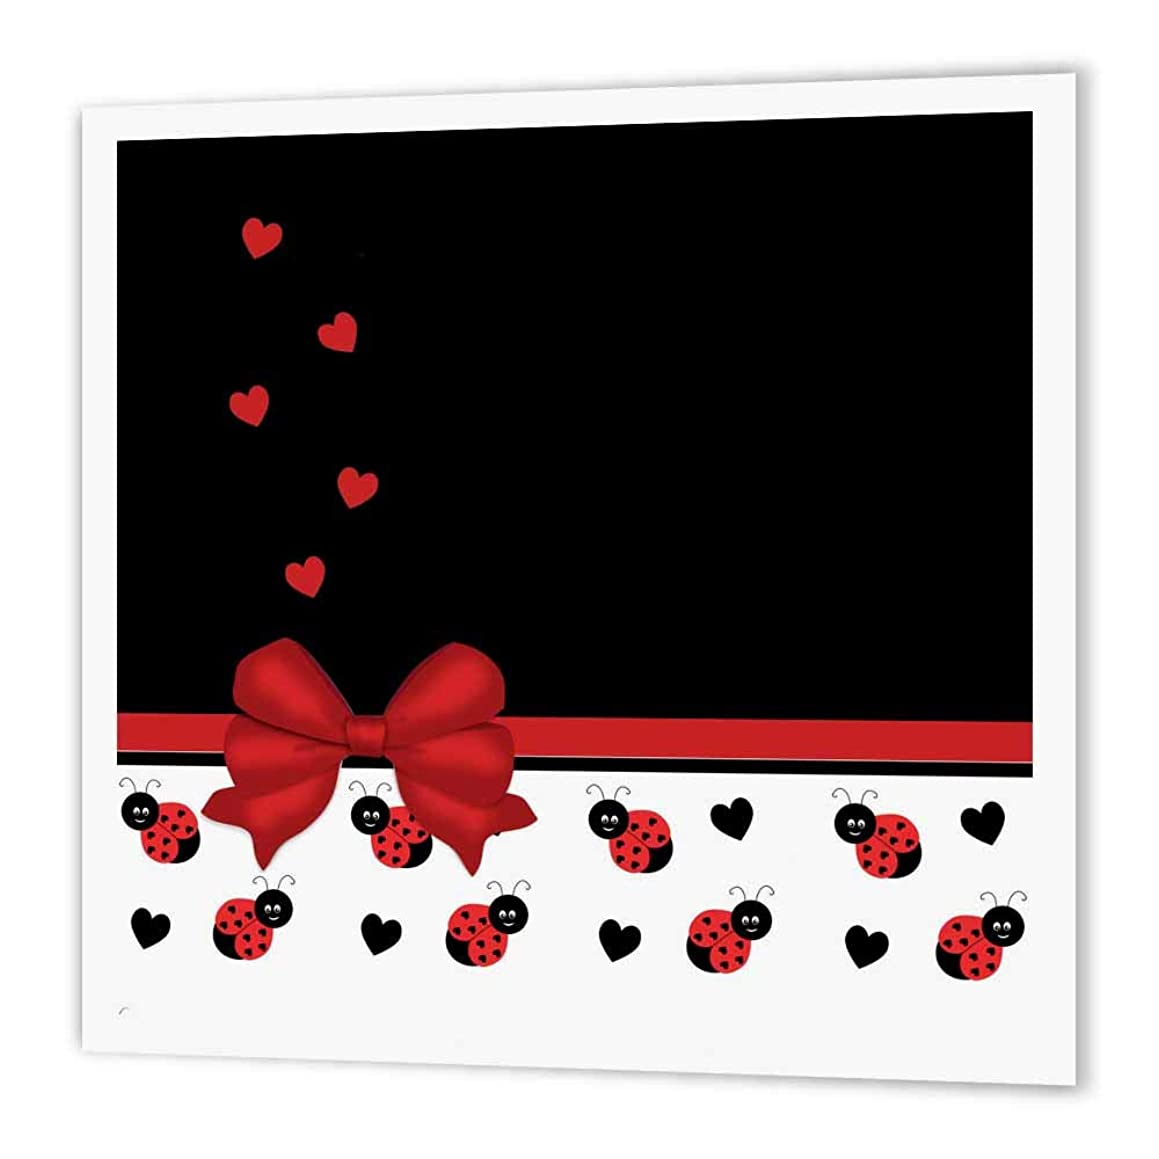 3dRose ht_155266_2 Cute Red Black Ladybugs Floating Hearts Red Ribbon-Iron on Heat Transfer Paper for White Material, 6 by 6-Inch hsitt61964